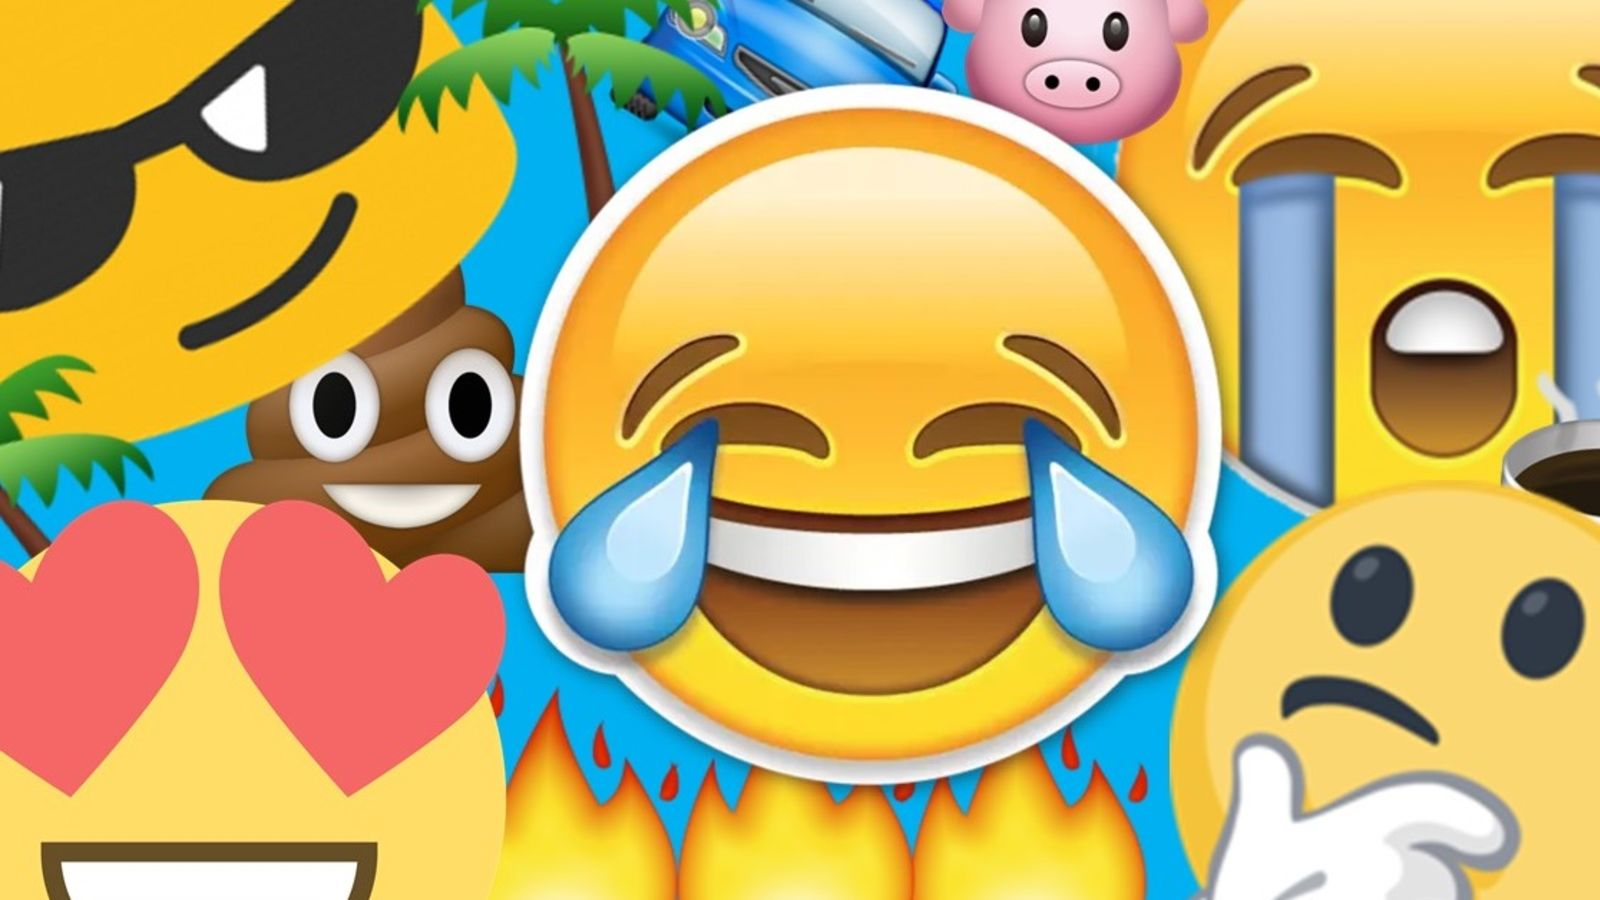 Where do emojis come from?